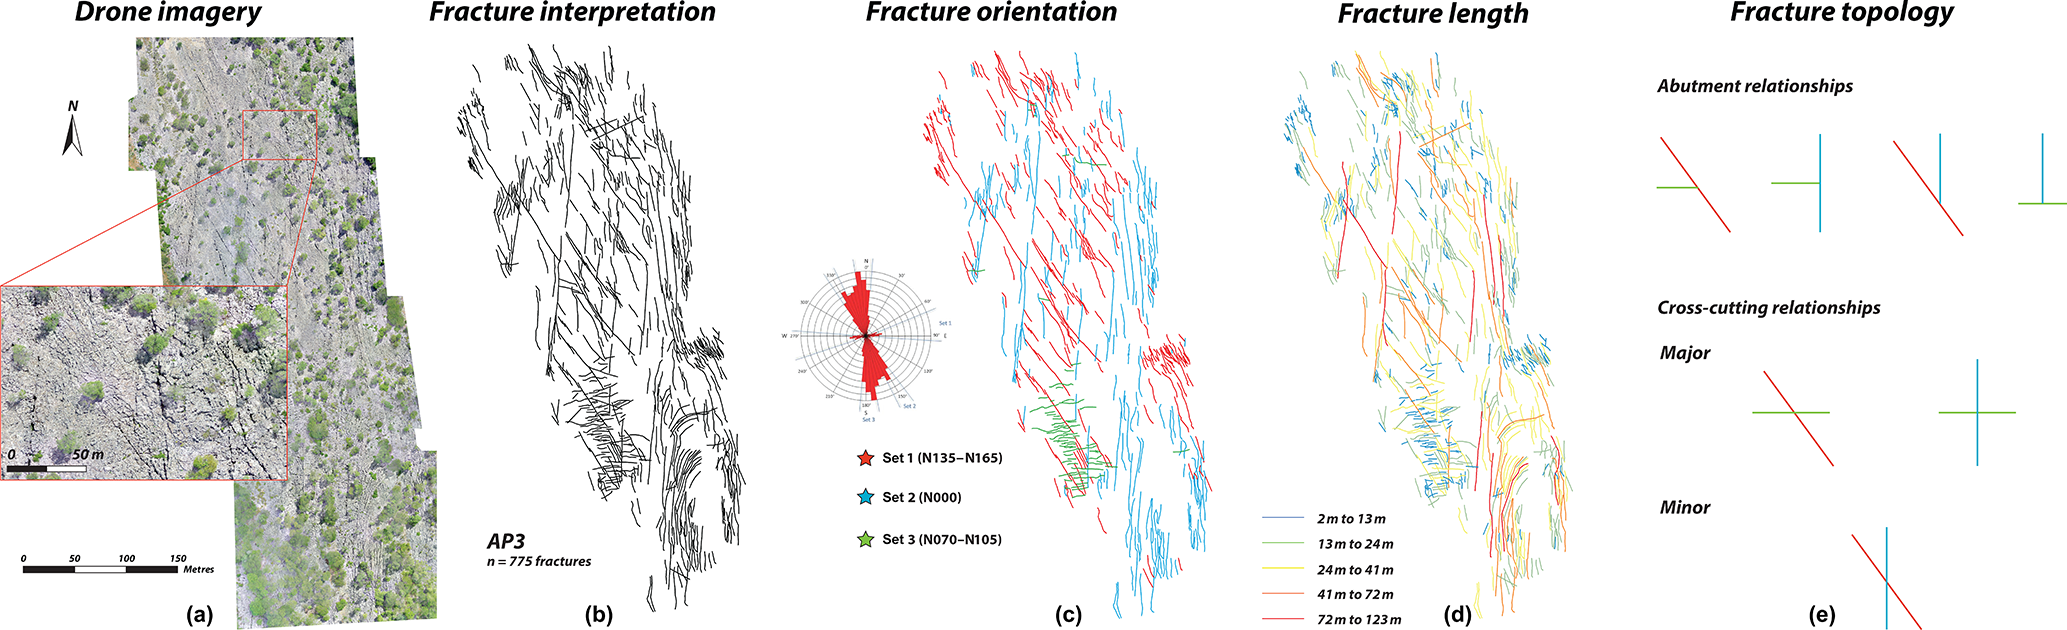 SE - A new methodology to train fracture network simulation